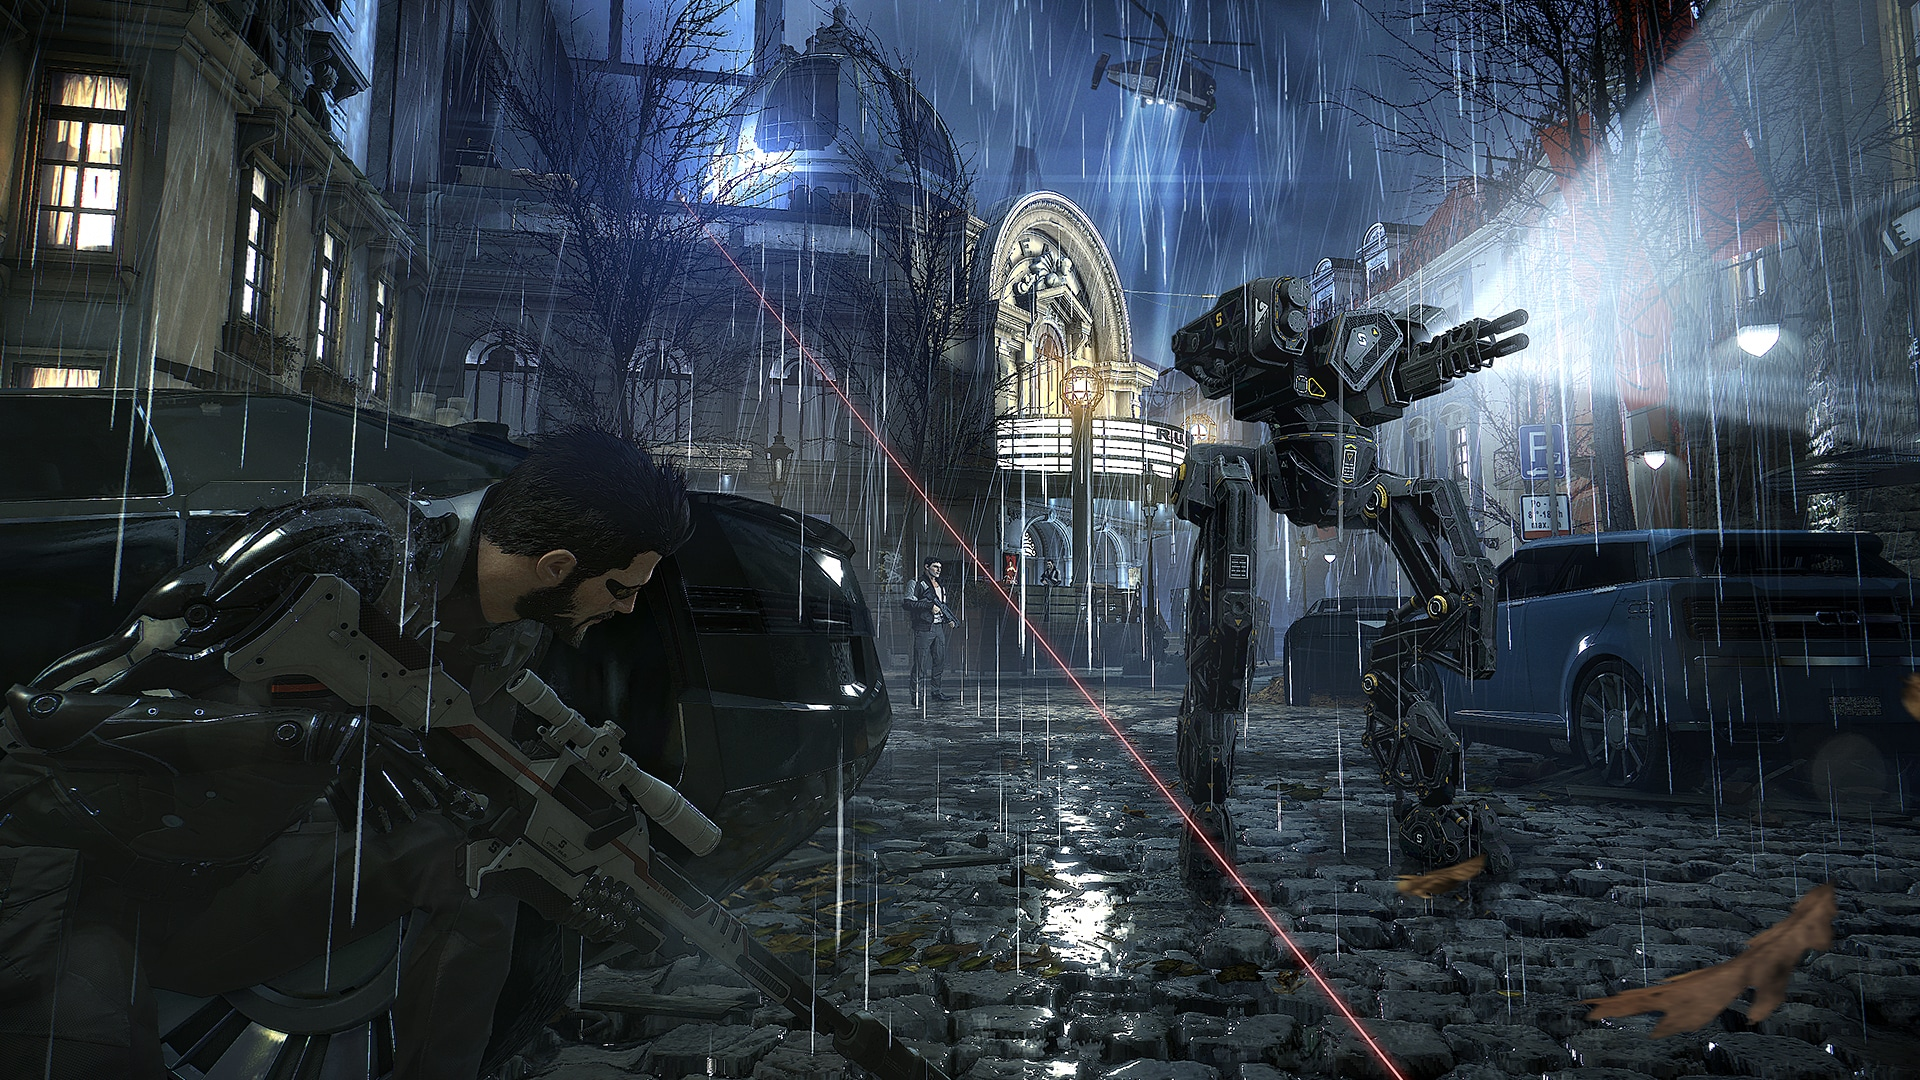 Deus Ex: Mankind Divided Square Enix Eidos Montreal modern day expansion pack of Human Revolution with a lot depth as an immersive sim in Prague